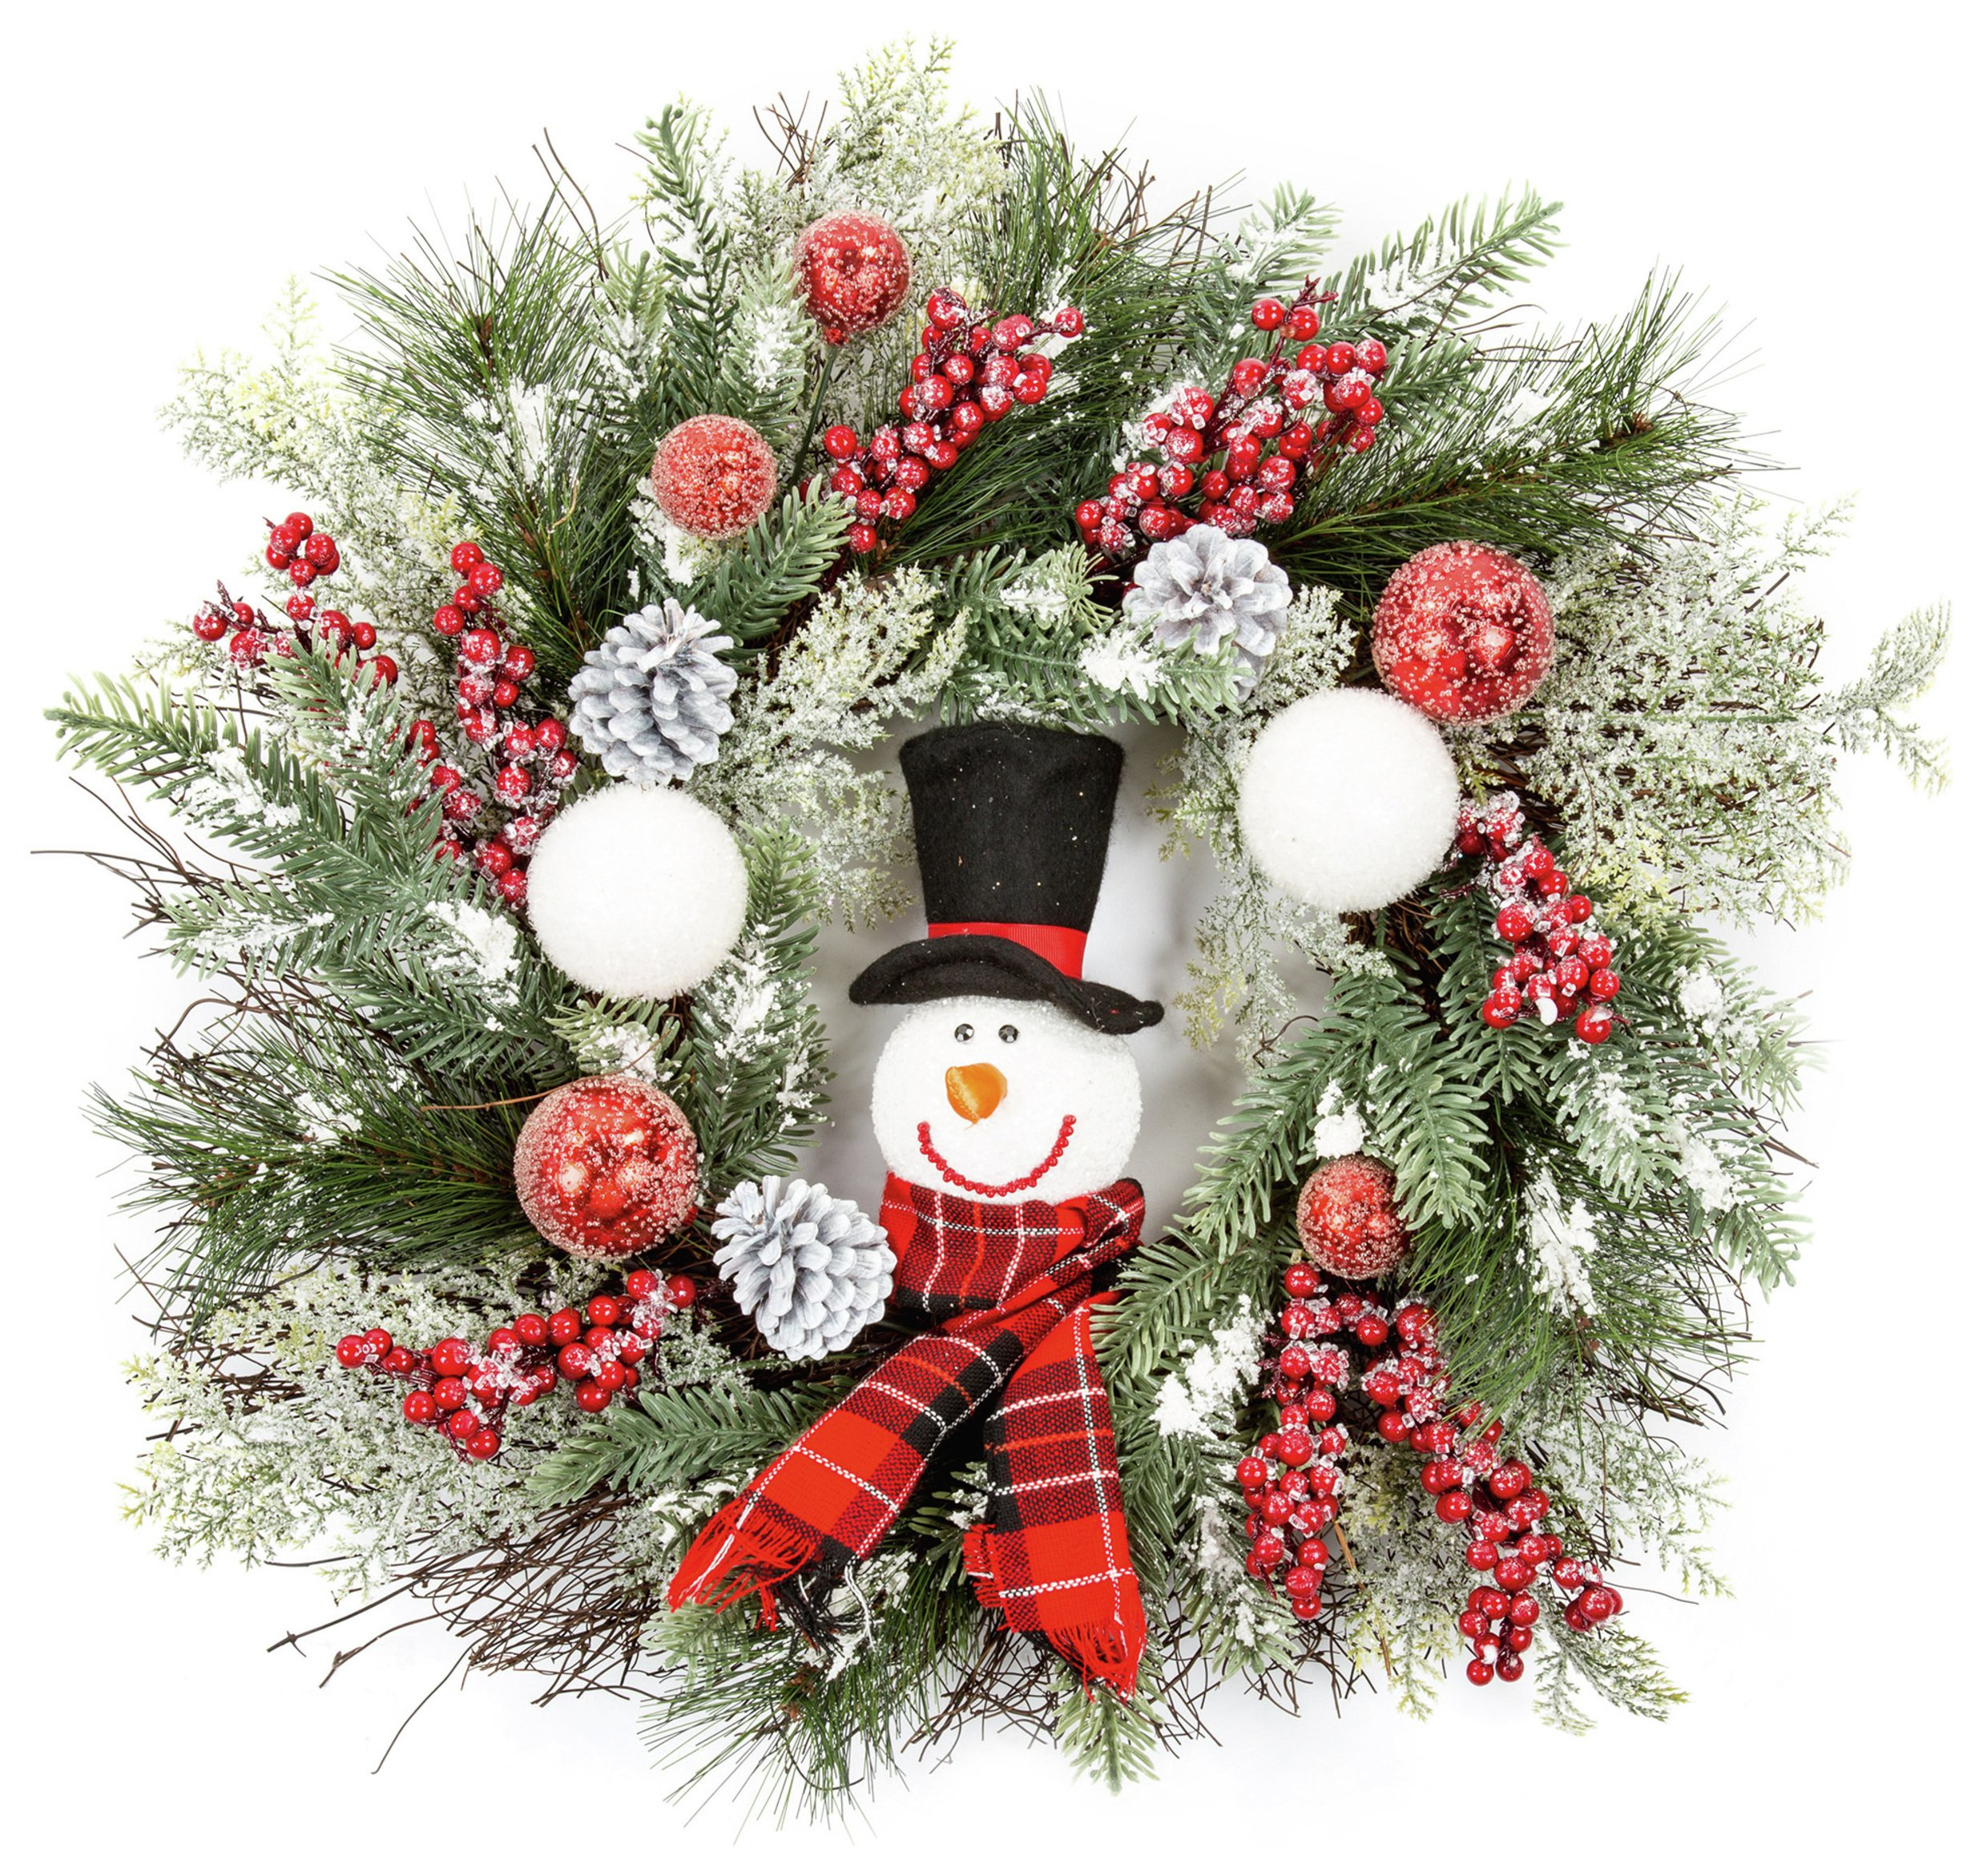 premier-decorations-60cm-snowman-wreath-green